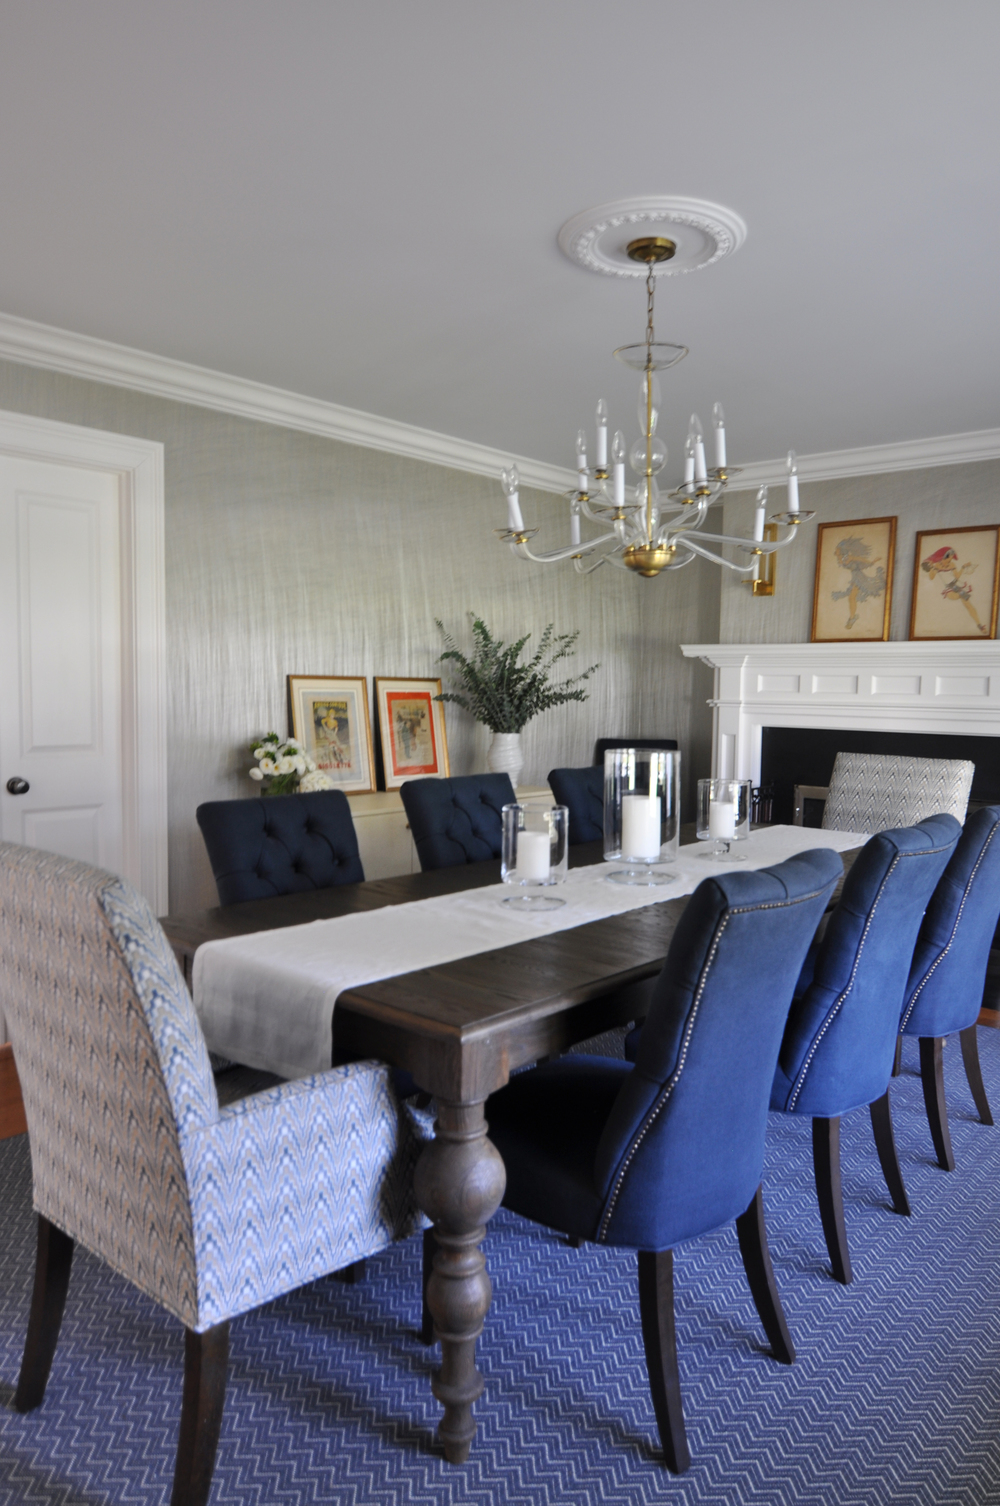 Classic Dining Room_New Rochelle NY_Innovations Wallcovering_Kravet Host Chair Fabric_Navy_Cream_Interior Designer Kim A Mitchell_KAM DESIGN_2016.jpg